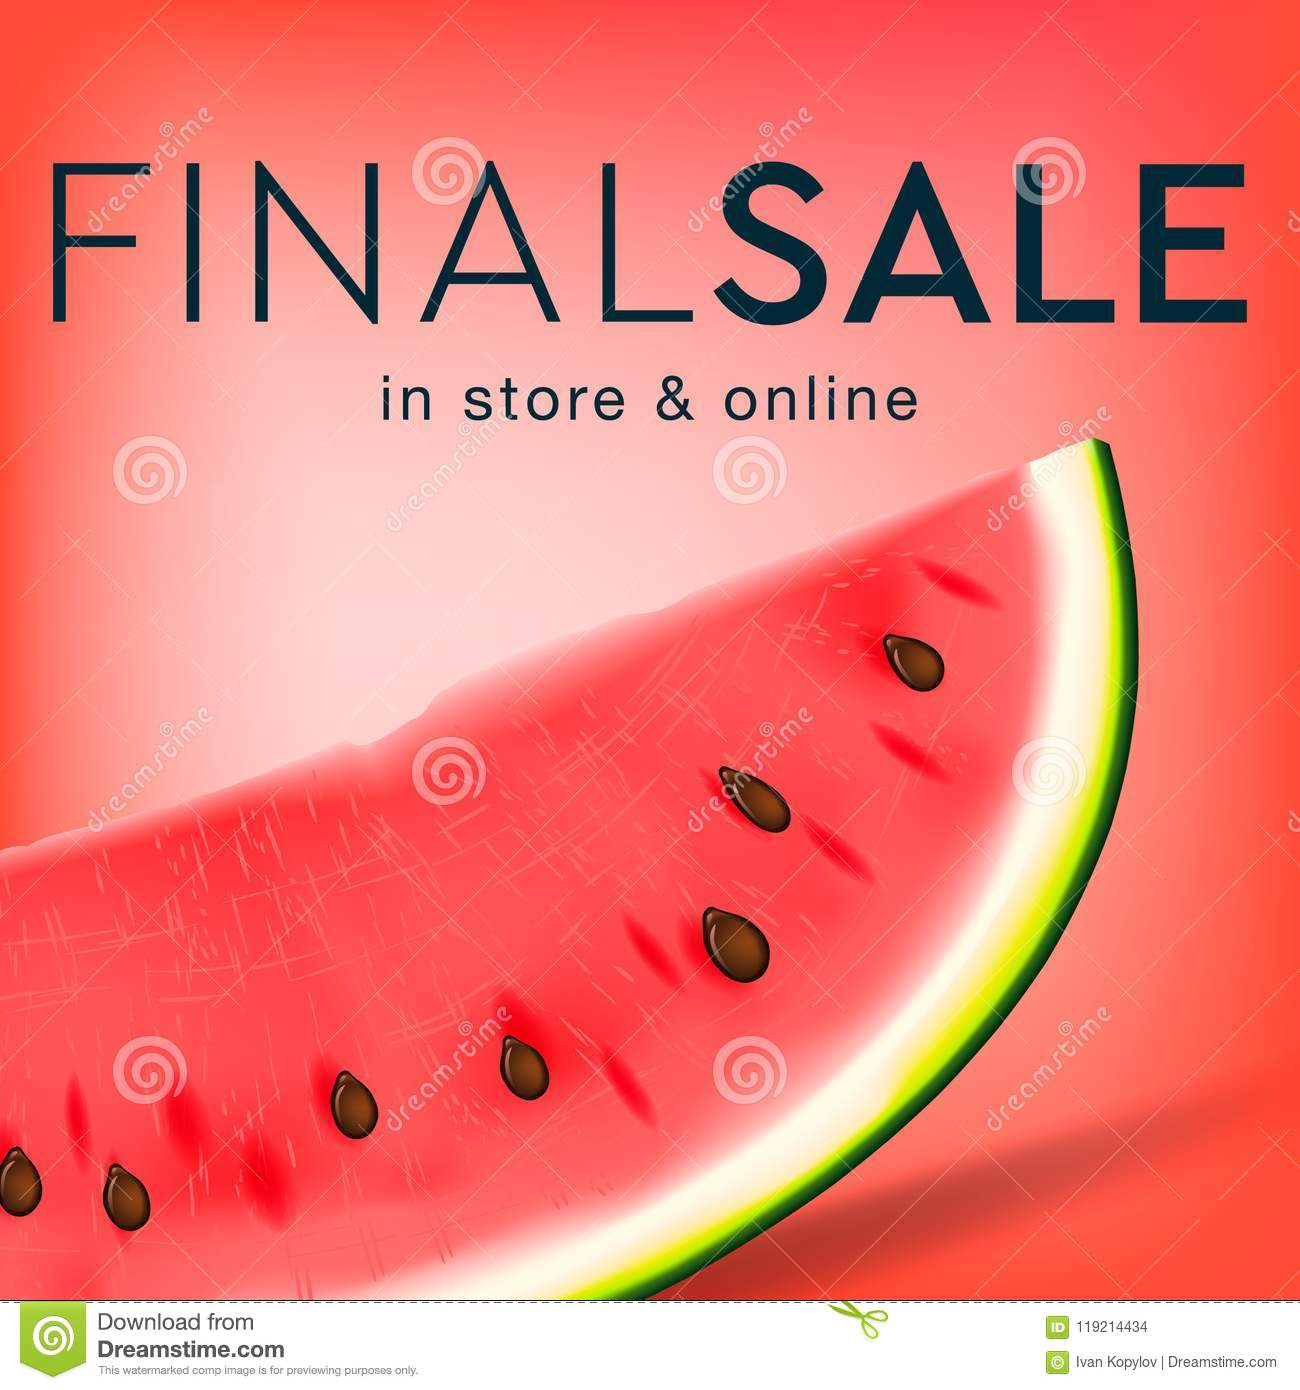 final sale social media template for online store watermelon slice